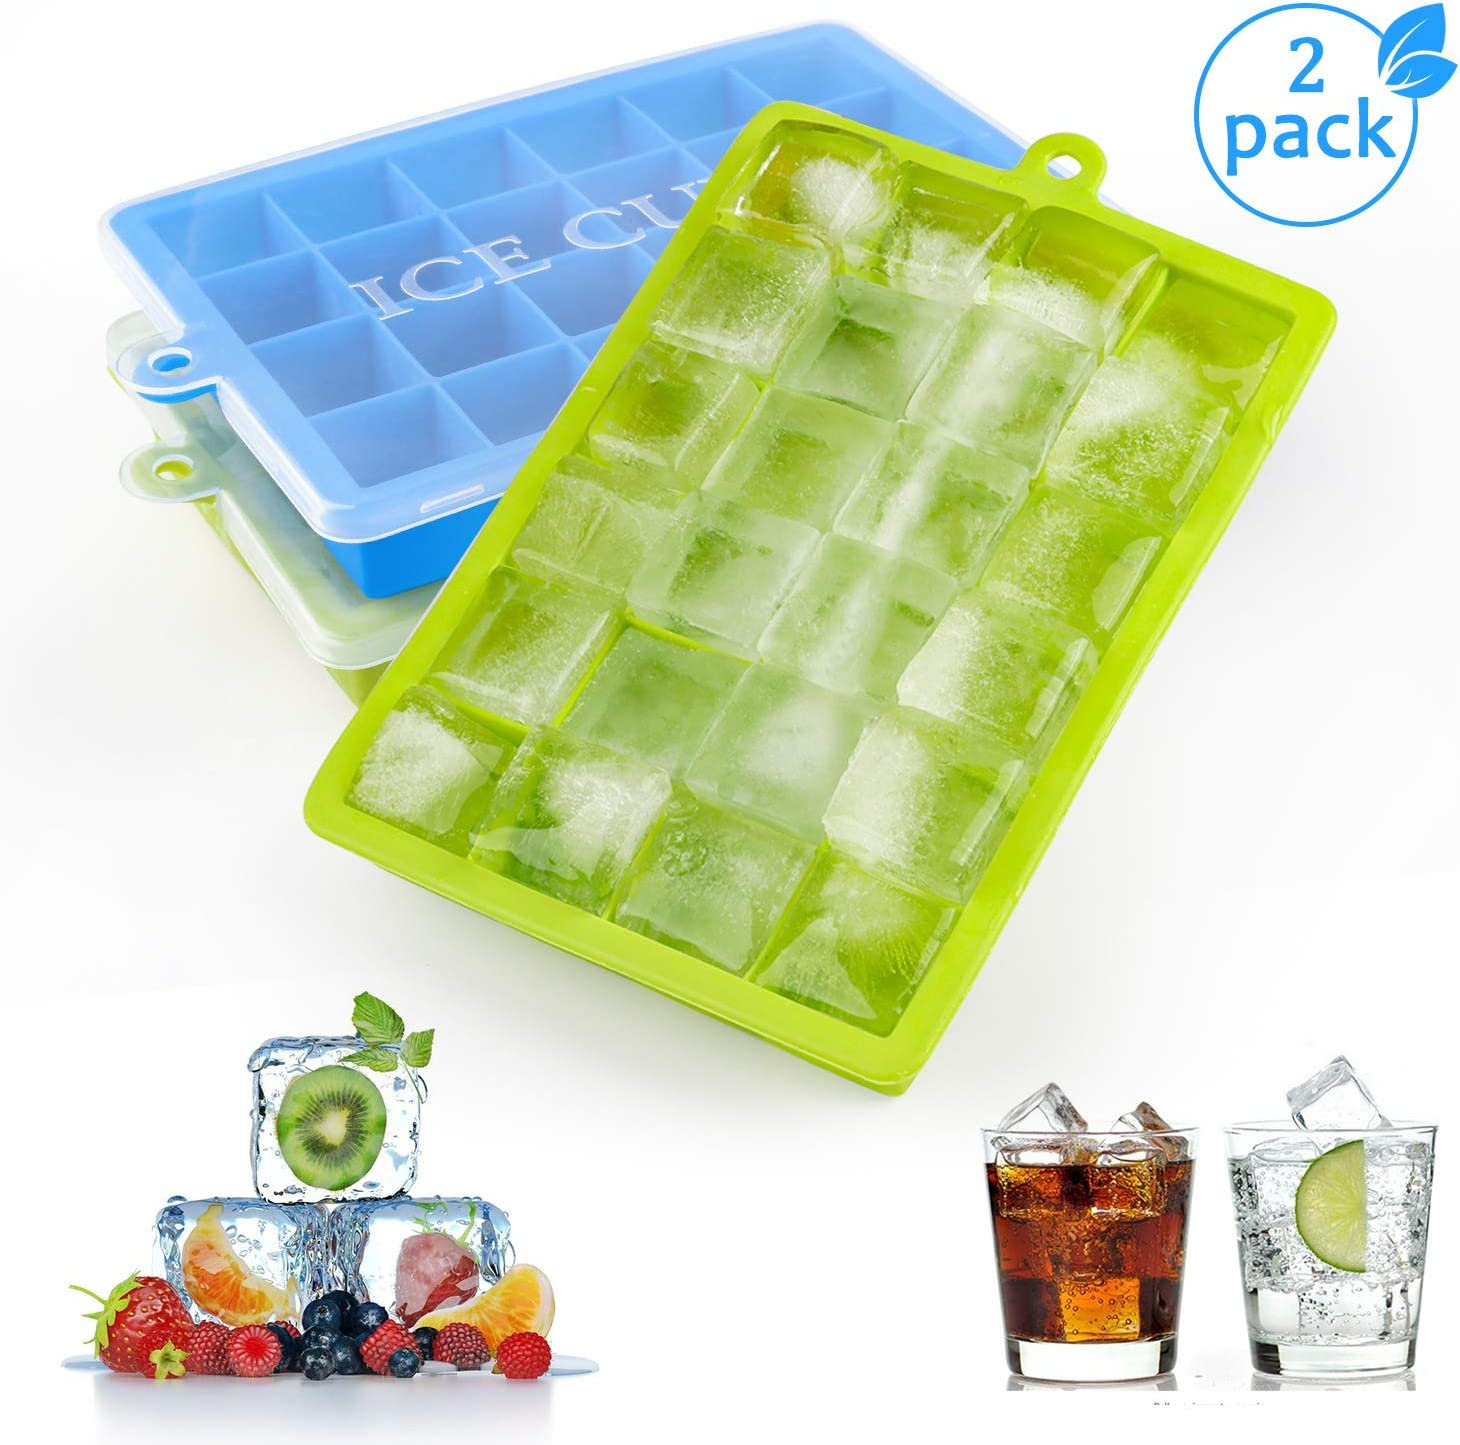 BPA Free Whiskey LFGB Certified Juice Beverages Ice Cube Trays 3 Pack Ice Cube Trays Silicon with Lids Easy Realease Ice Cube Mould 24 Cubes per Tray for Cocktail